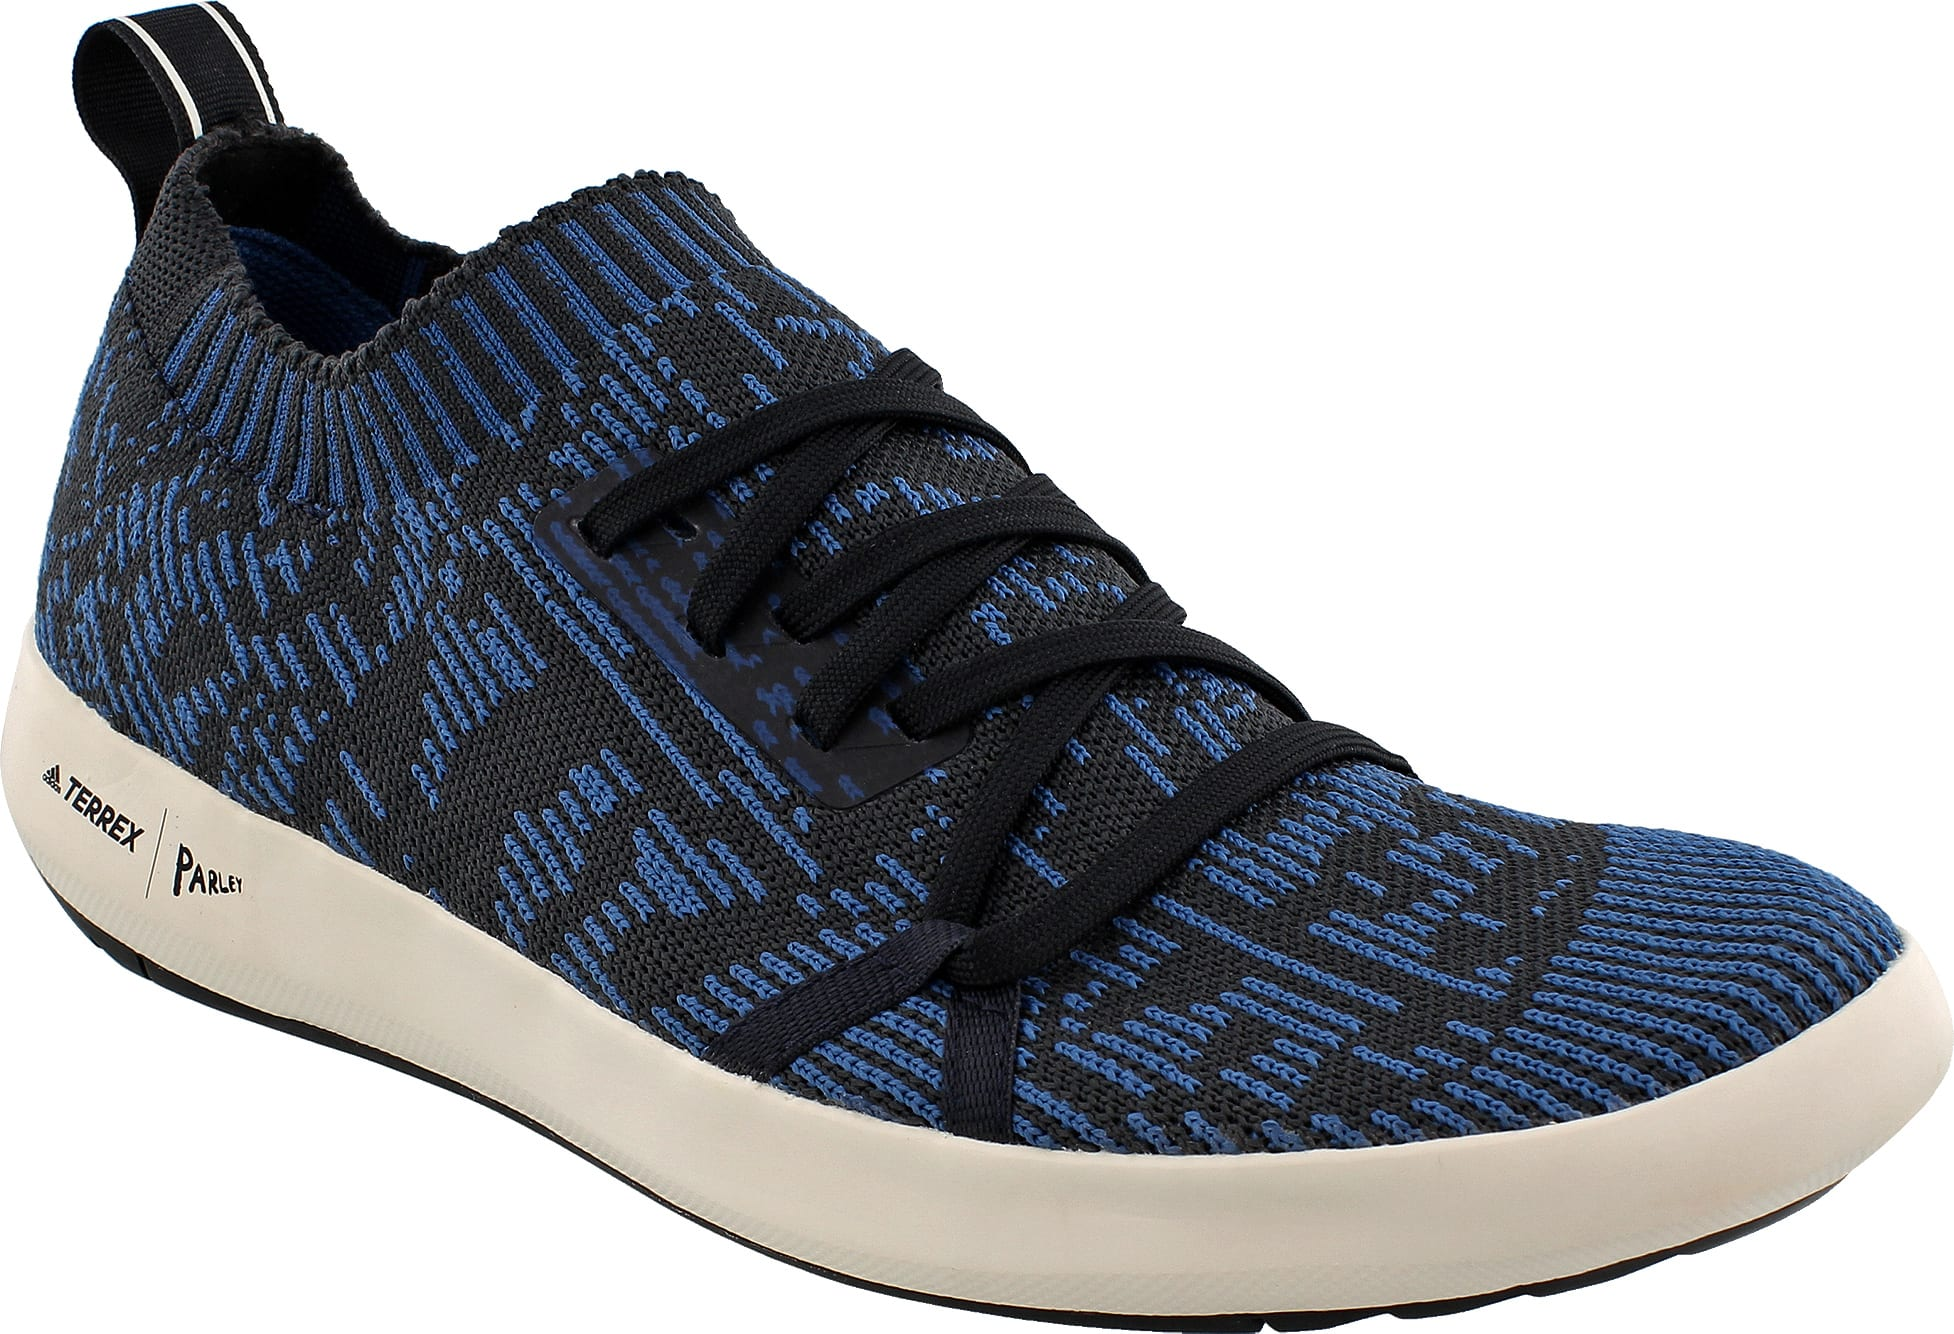 Adidas Terrex Climacool Parley Boat Water Shoes